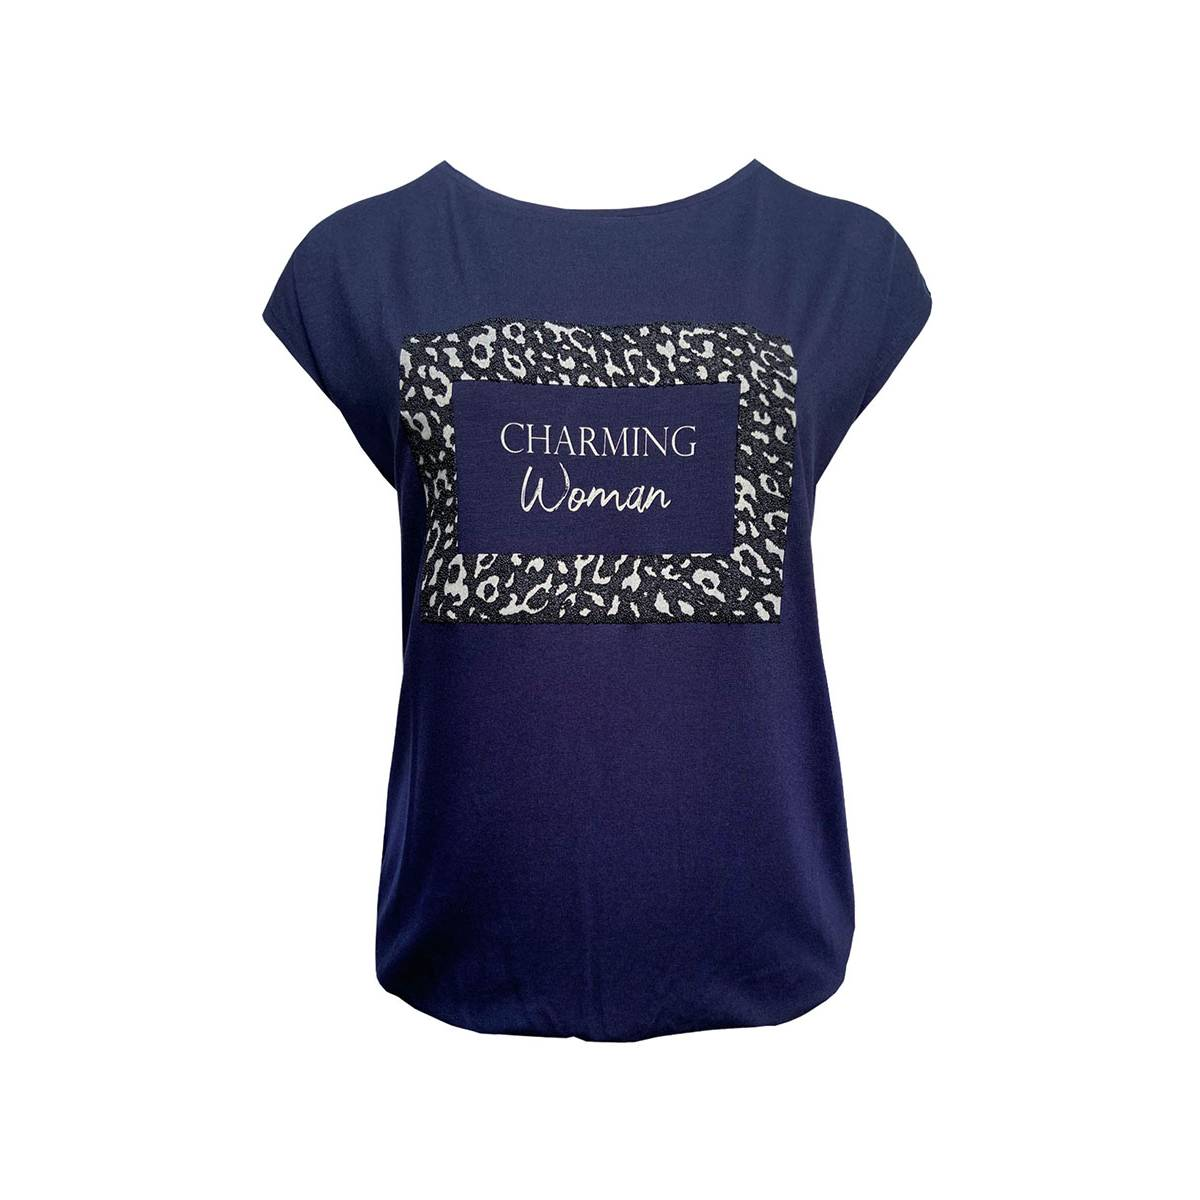 Elvira E4 20-45 T-SHIRT CHARMING Blauw